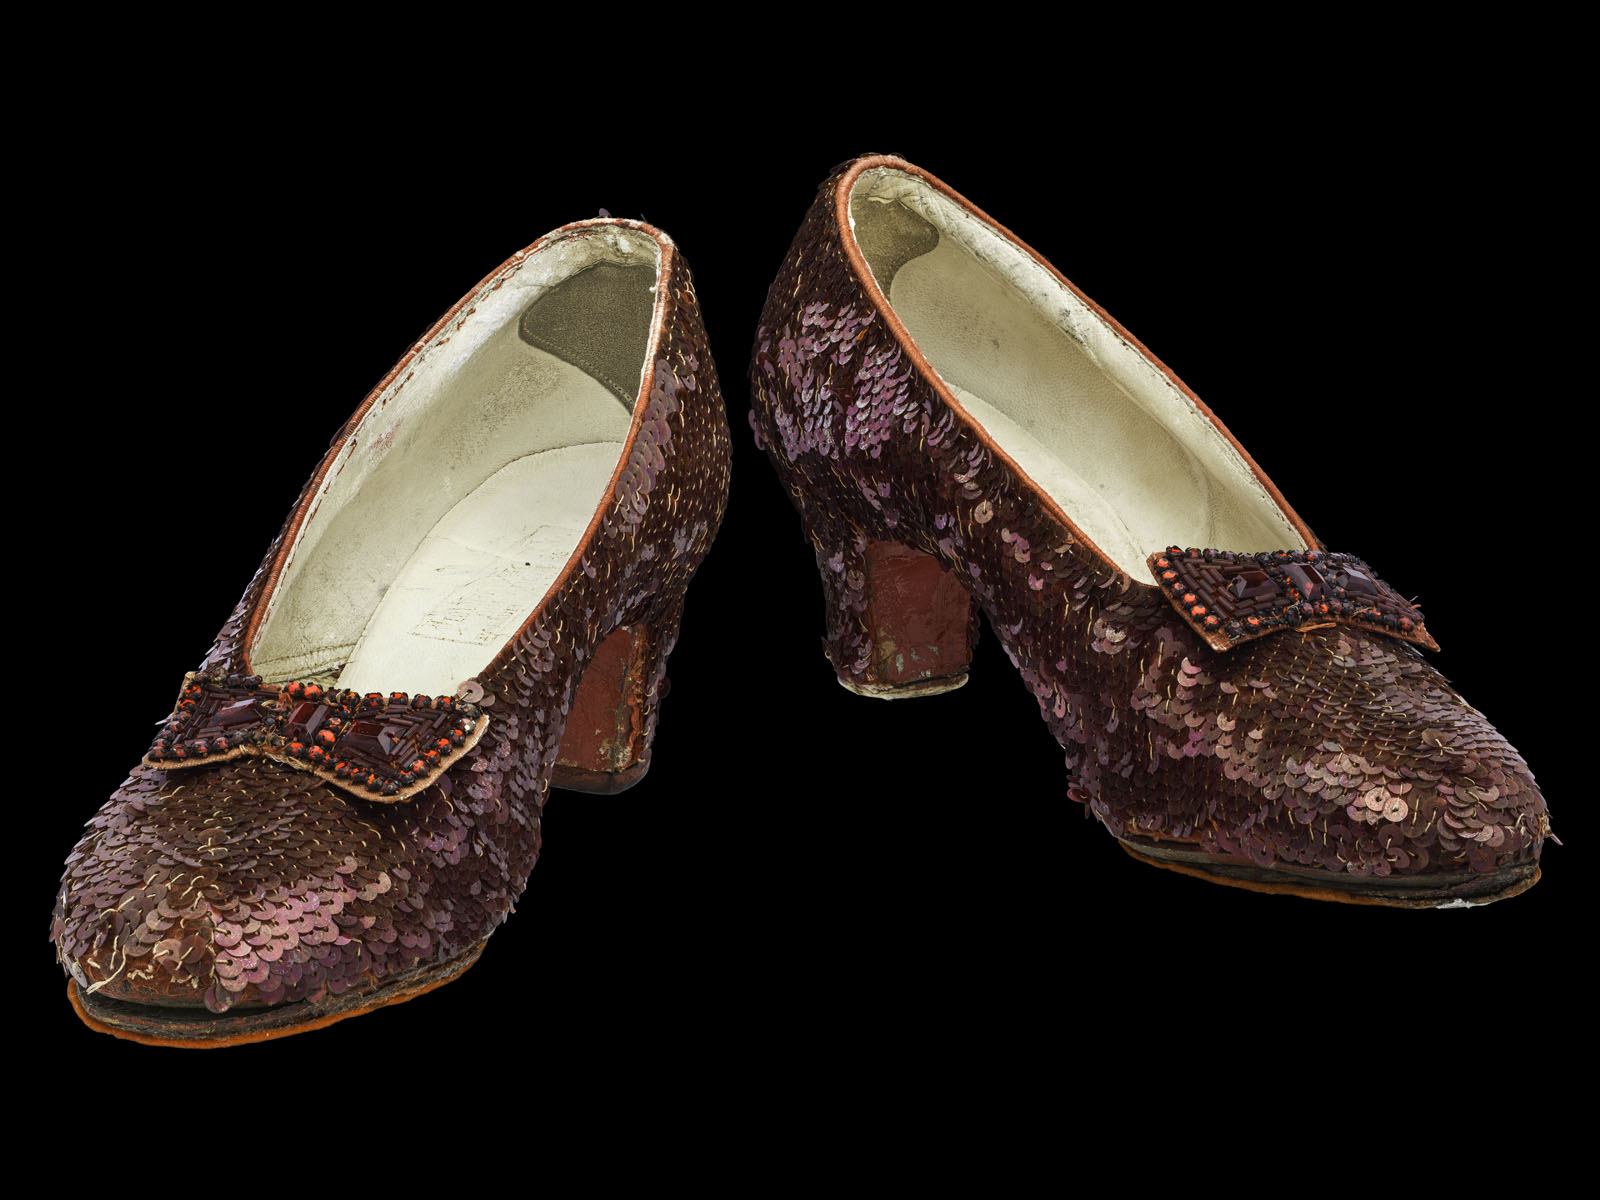 The famous slippers have been on display since 1979 and are showing their age. (Courtesy Smithsonian National Museum of American History)